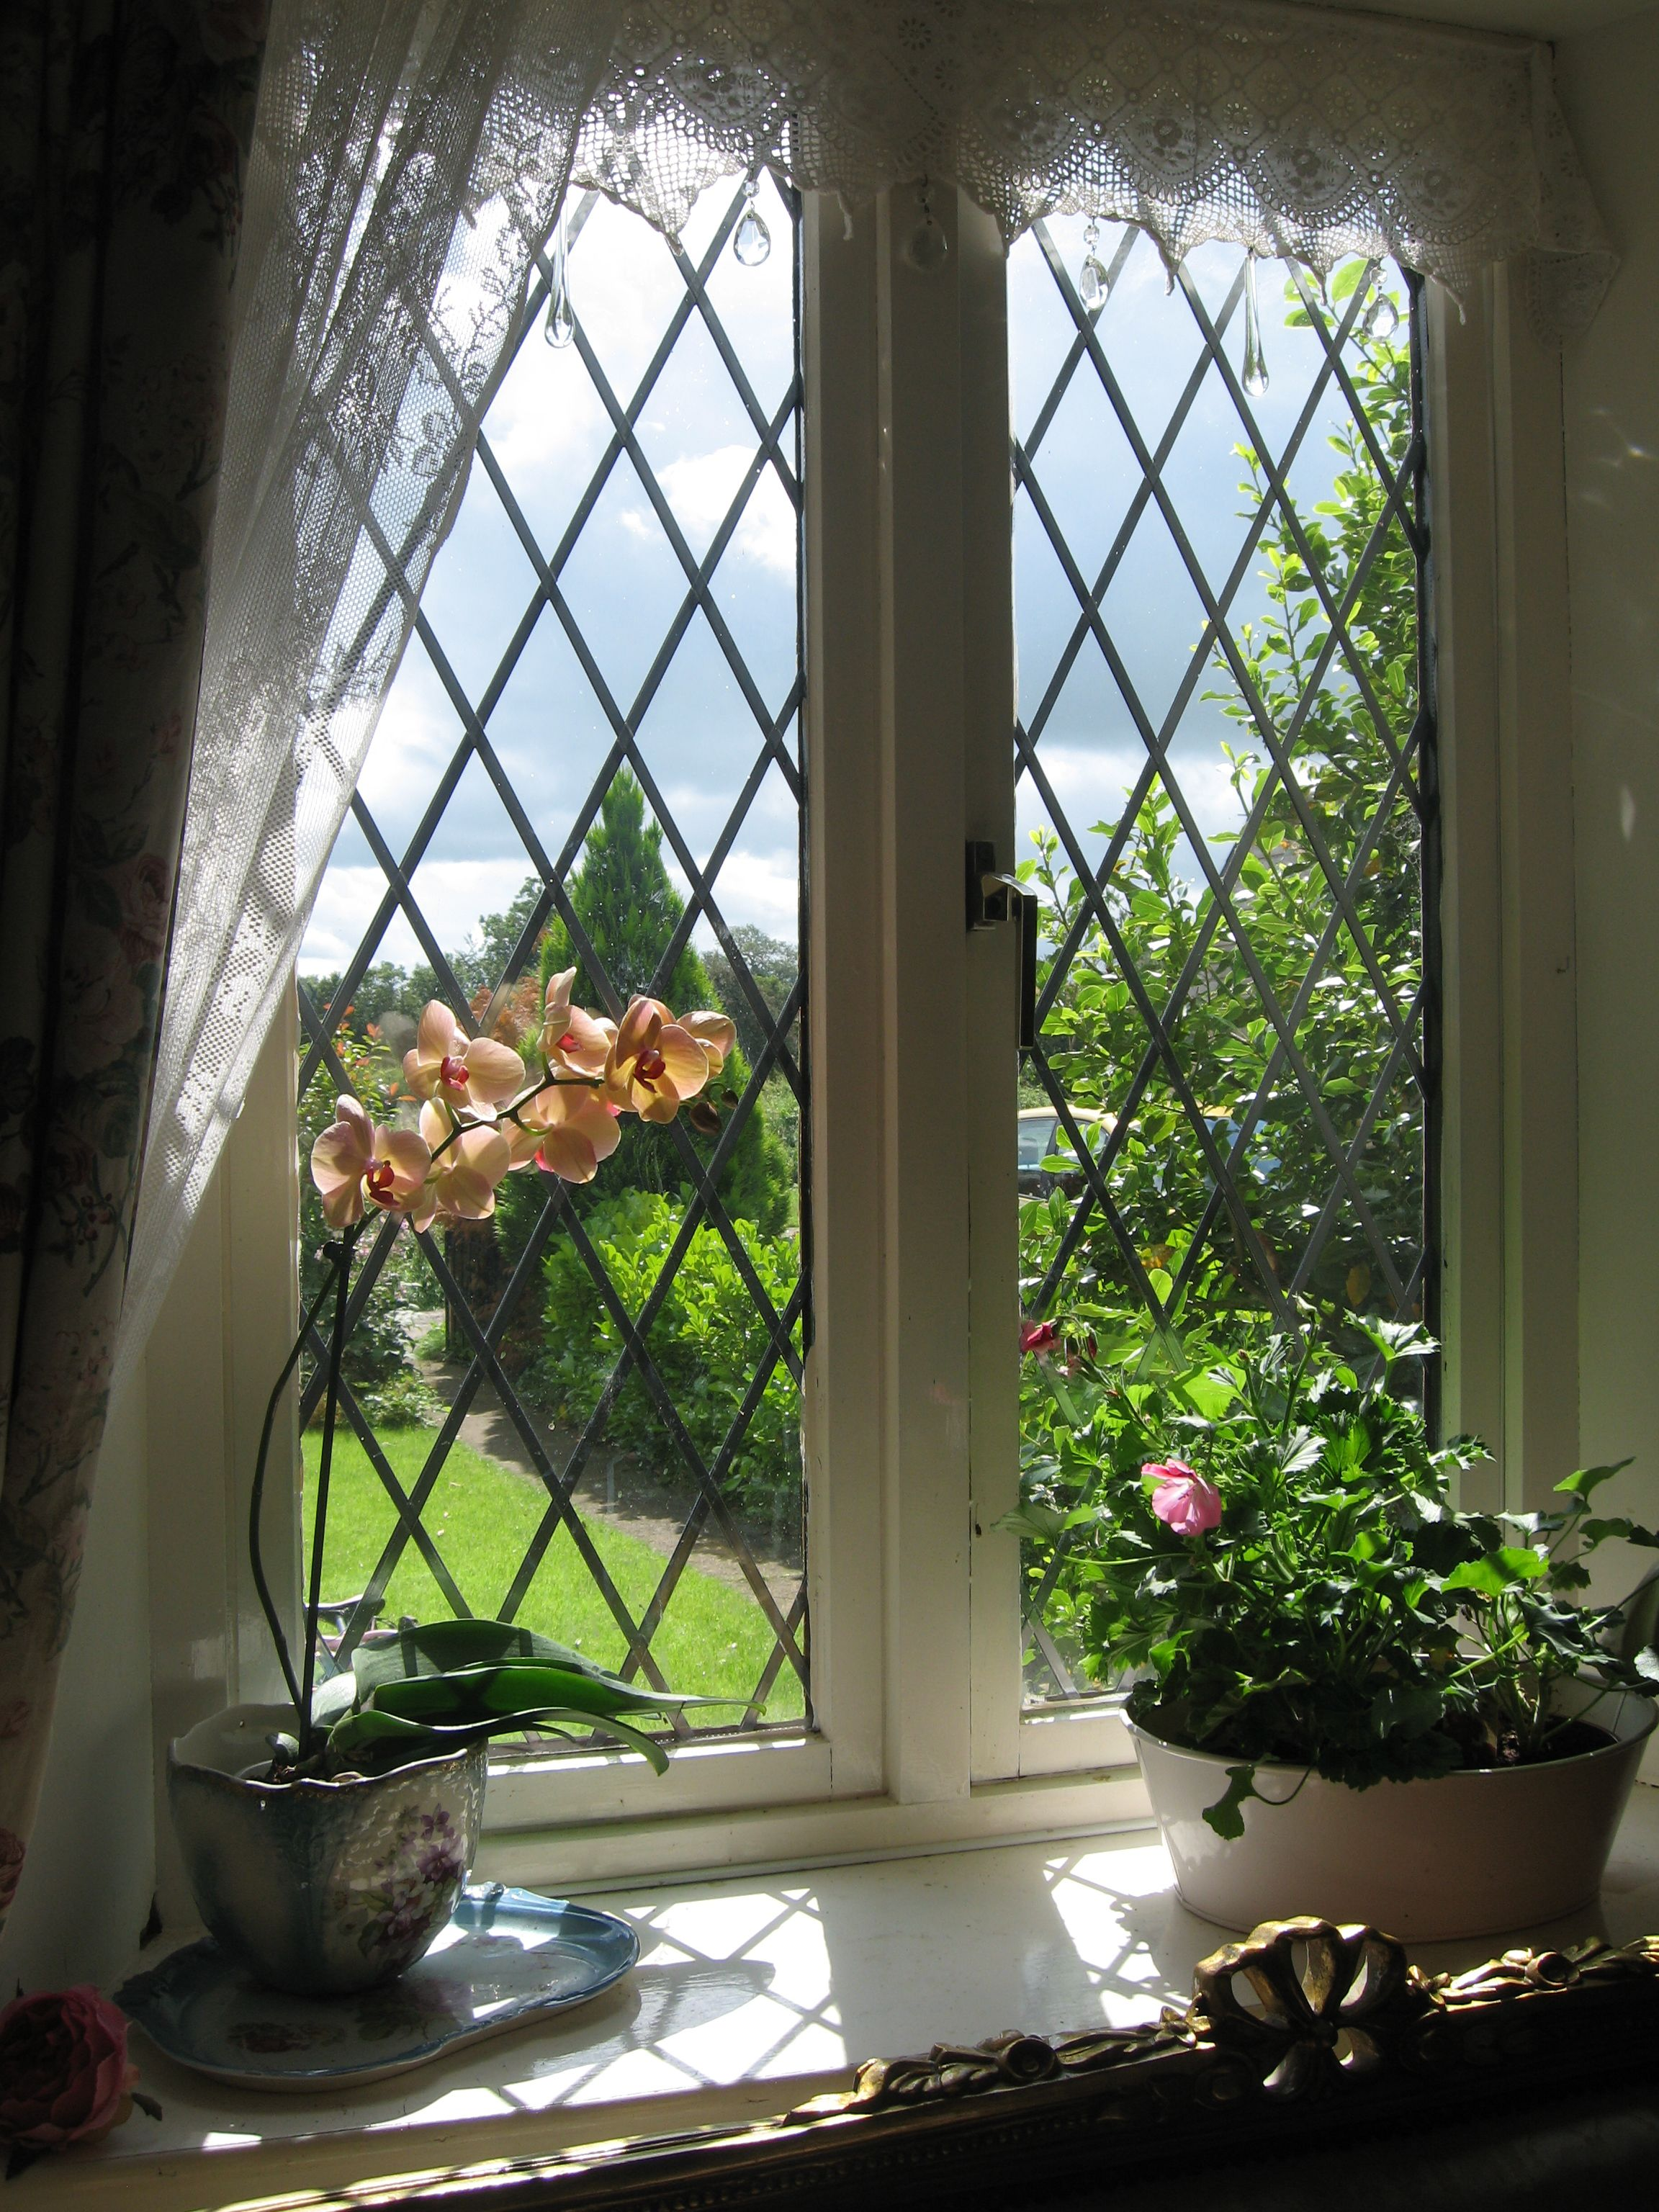 Glass window design - These Leaded Glass Windows Have Always Hold Me In Their Sway